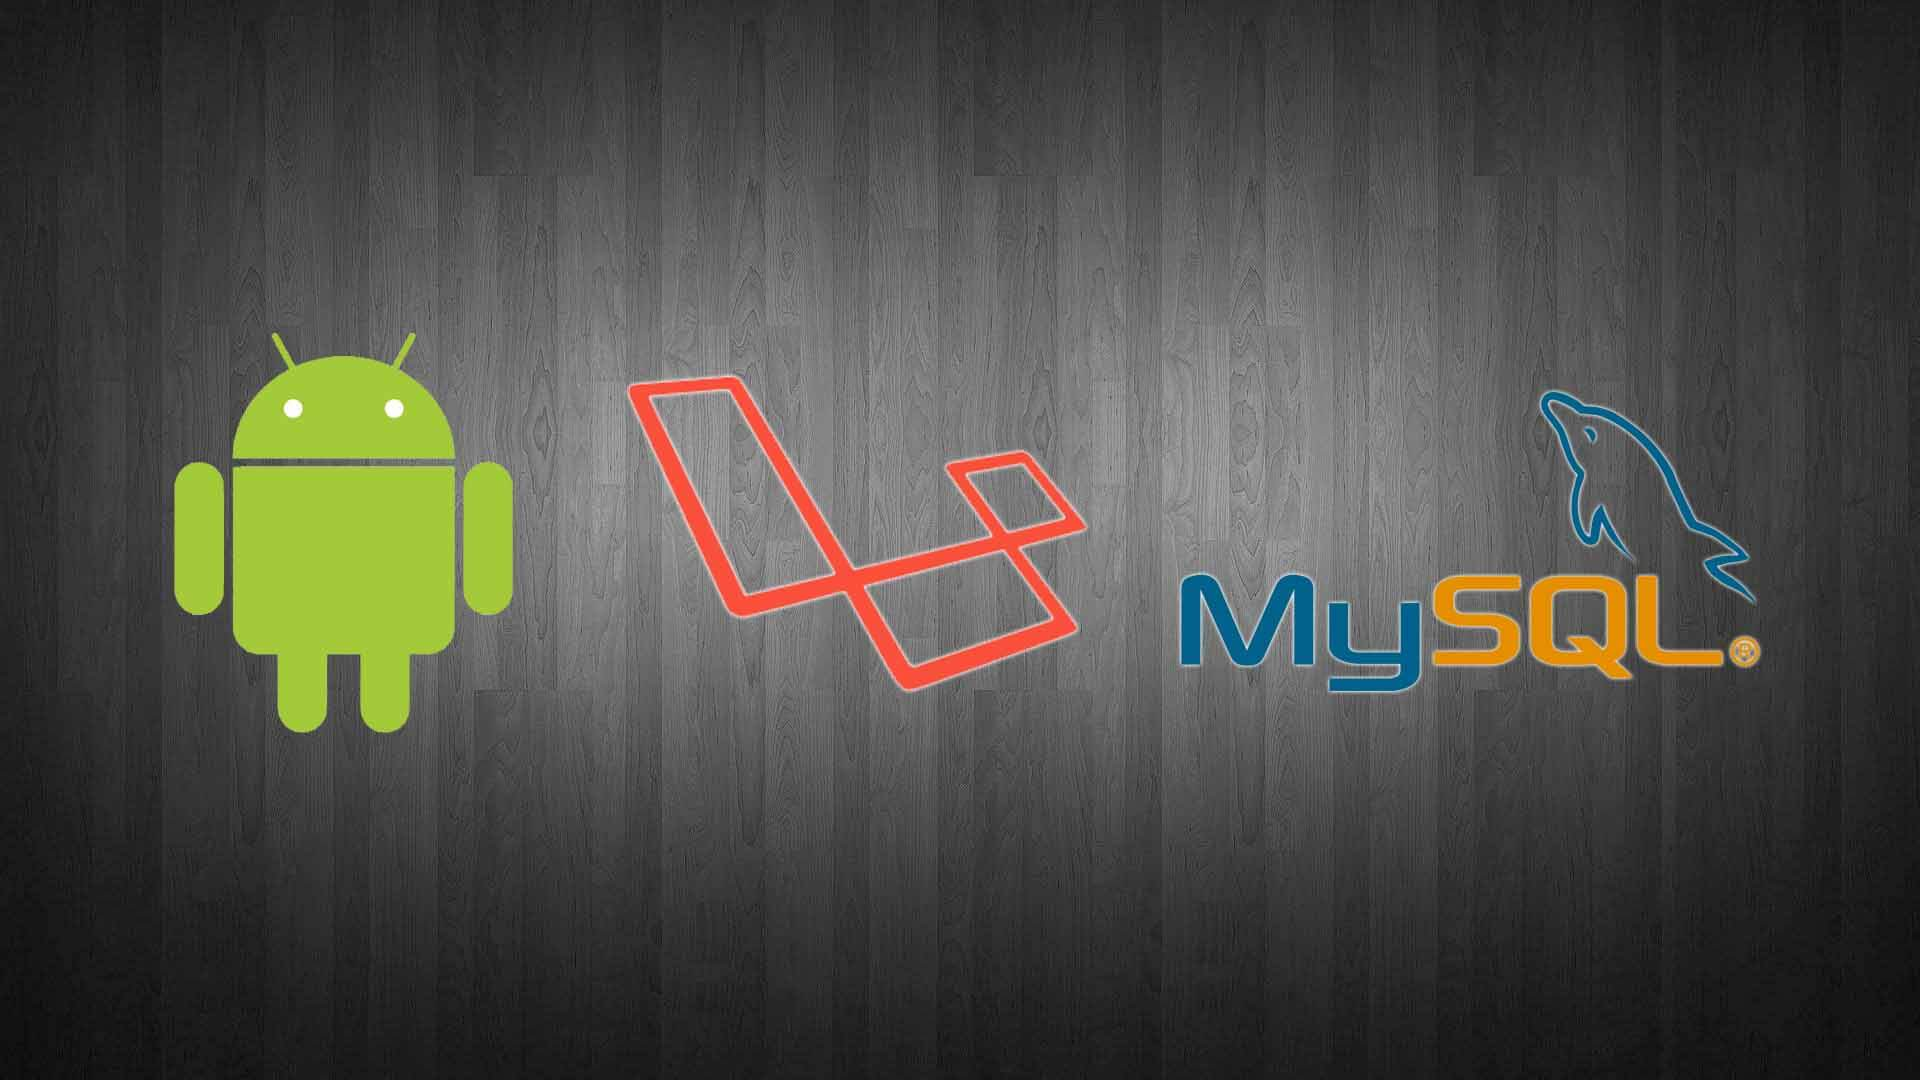 How to install laravel in android phone